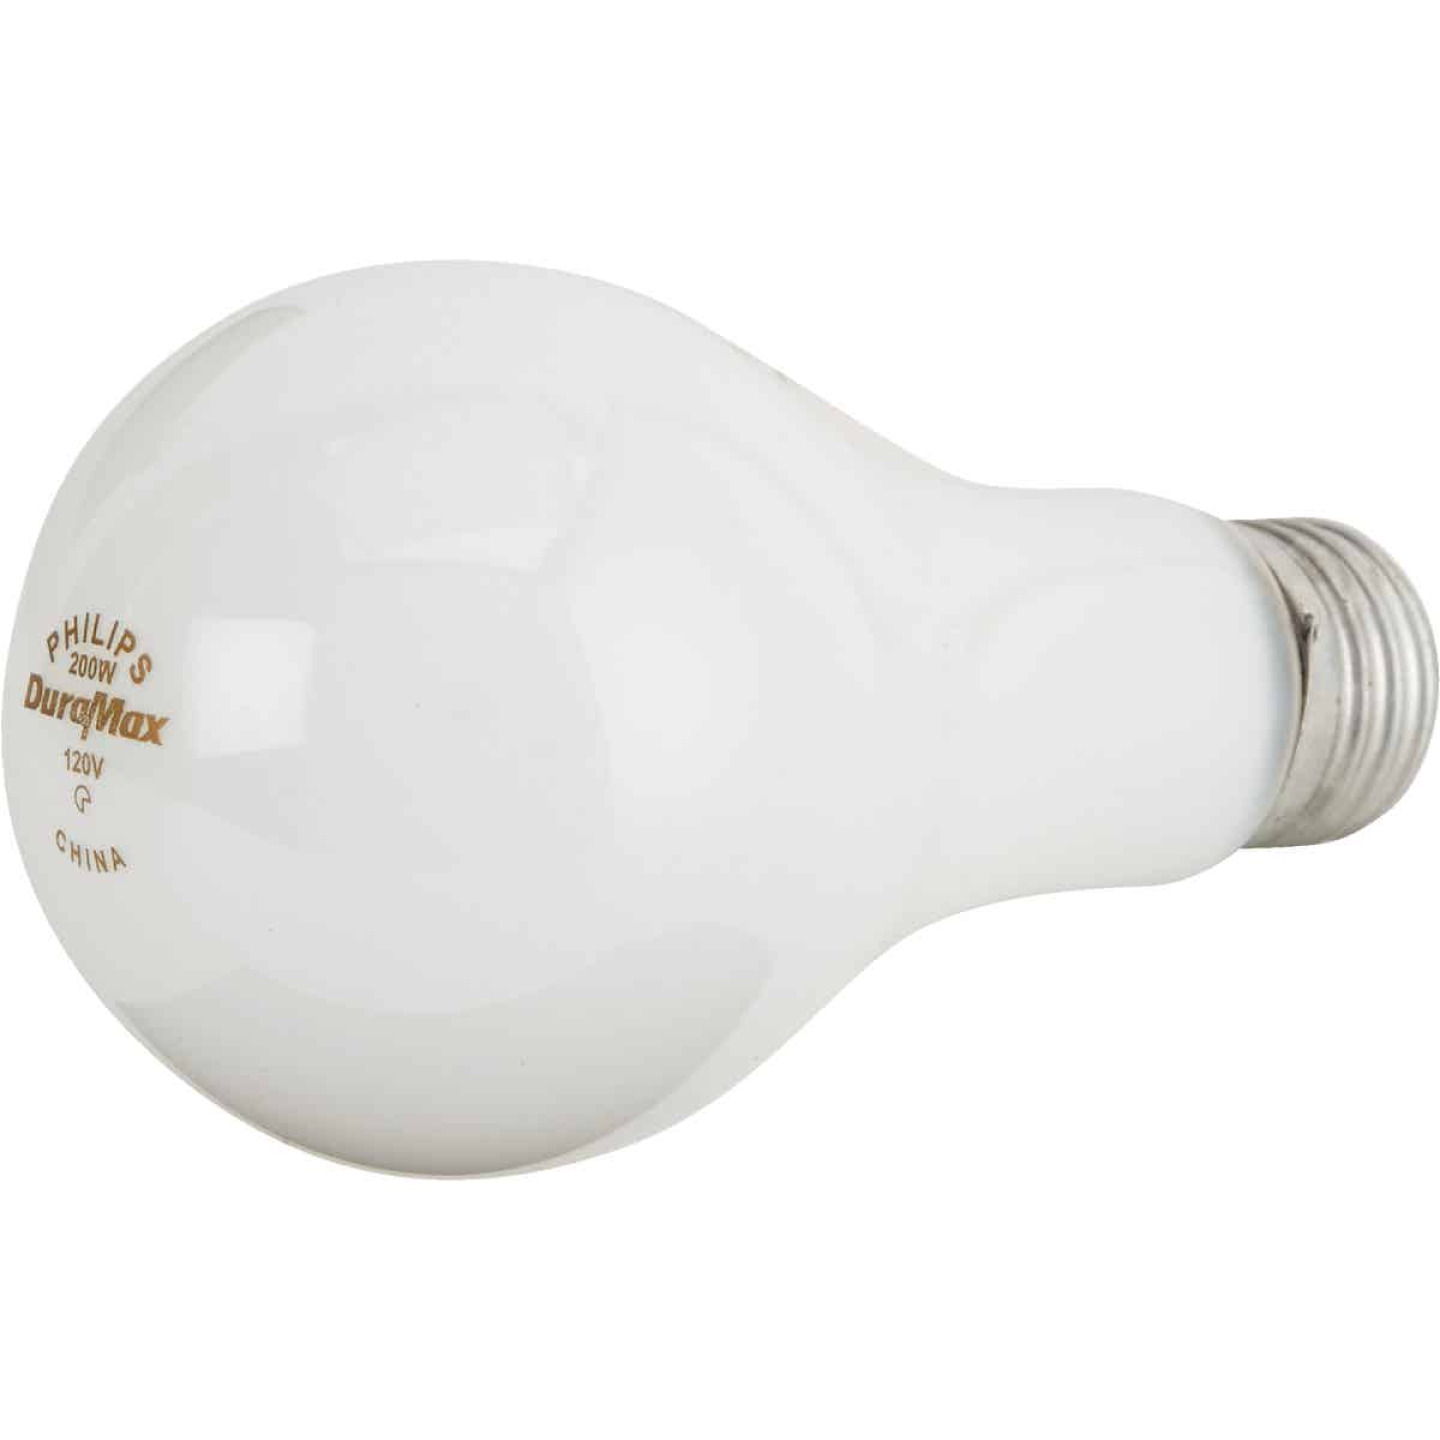 Philips DuraMax 200W Frosted Soft White Medium A21 Incandescent Light Bulb Image 3